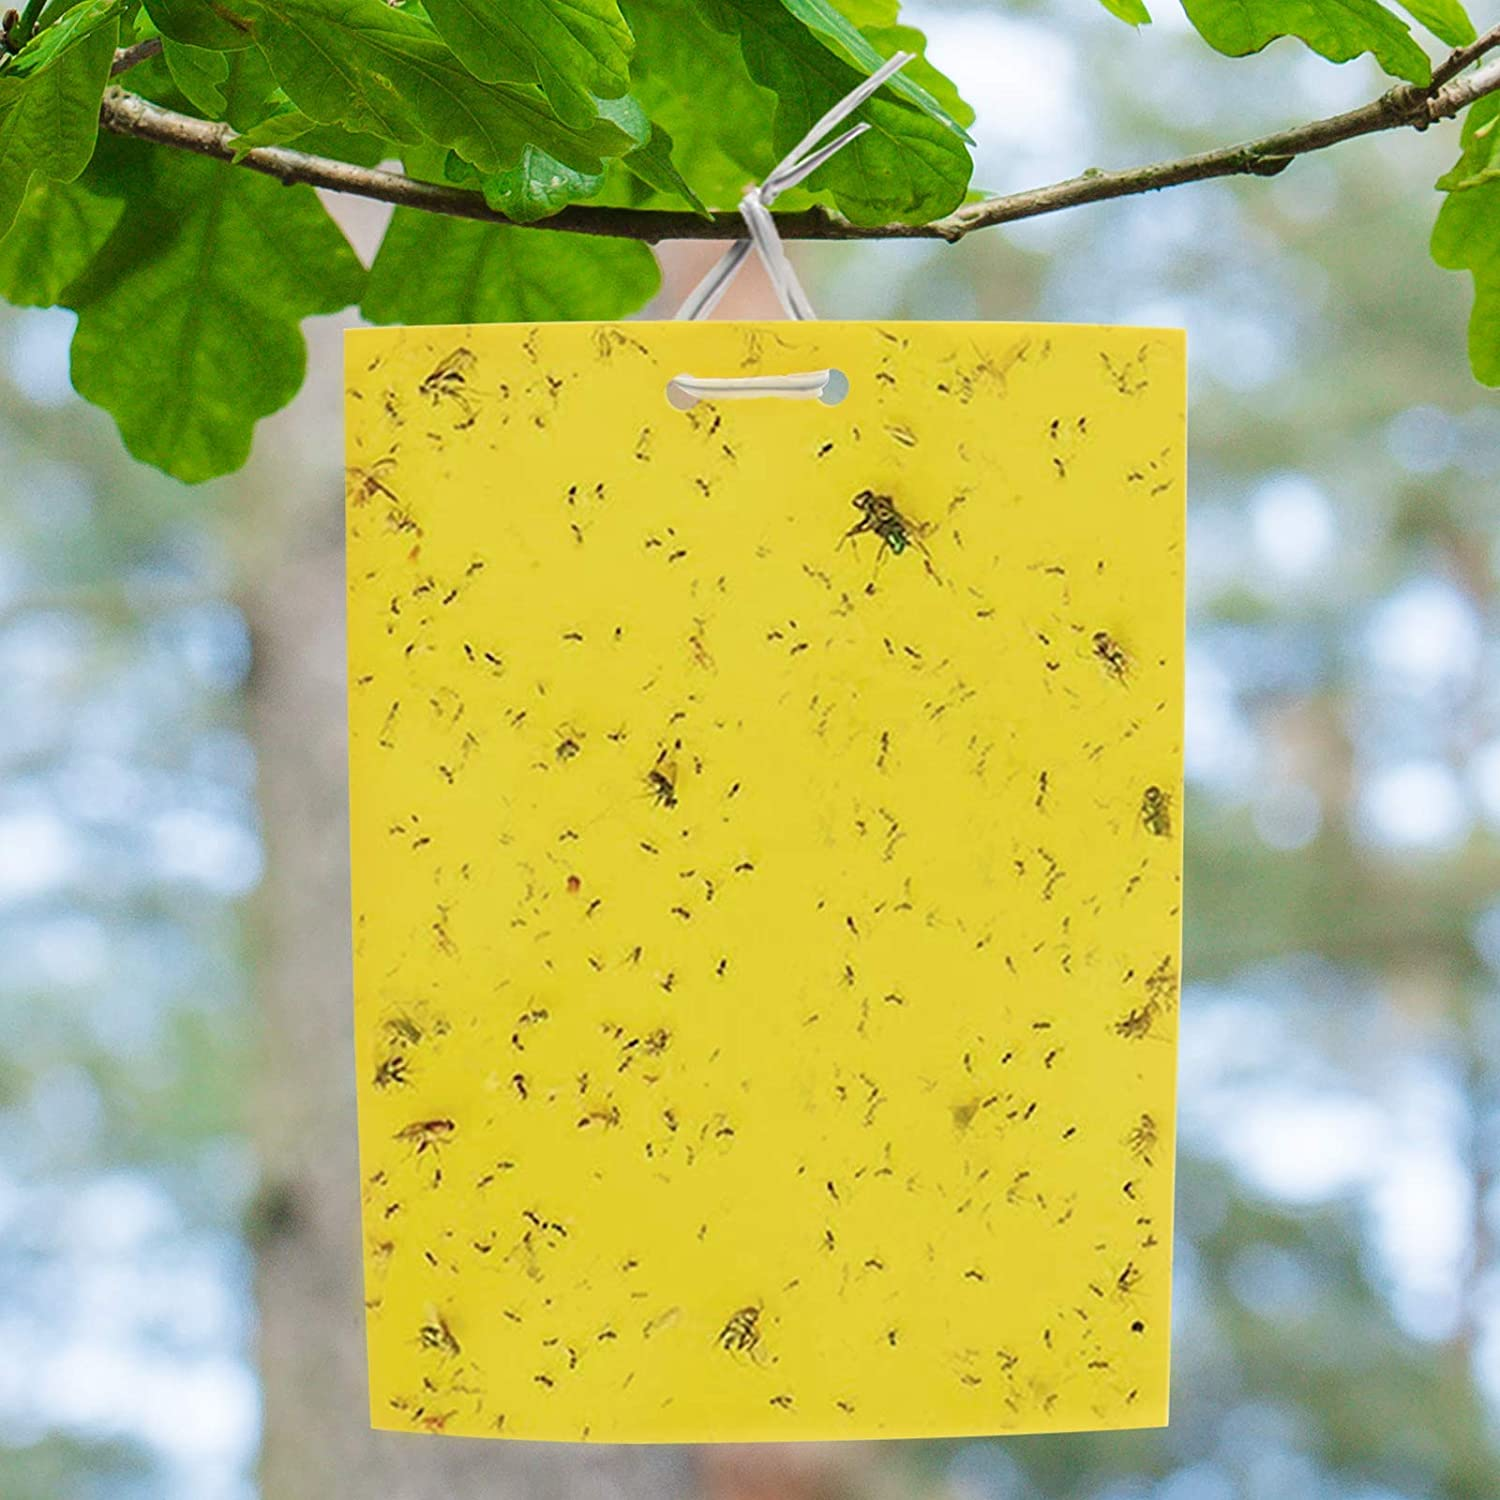 50 Pcs Sticky Fly Trap Paper Yellow Traps Fruit Flies Insect Glue Catcher Set